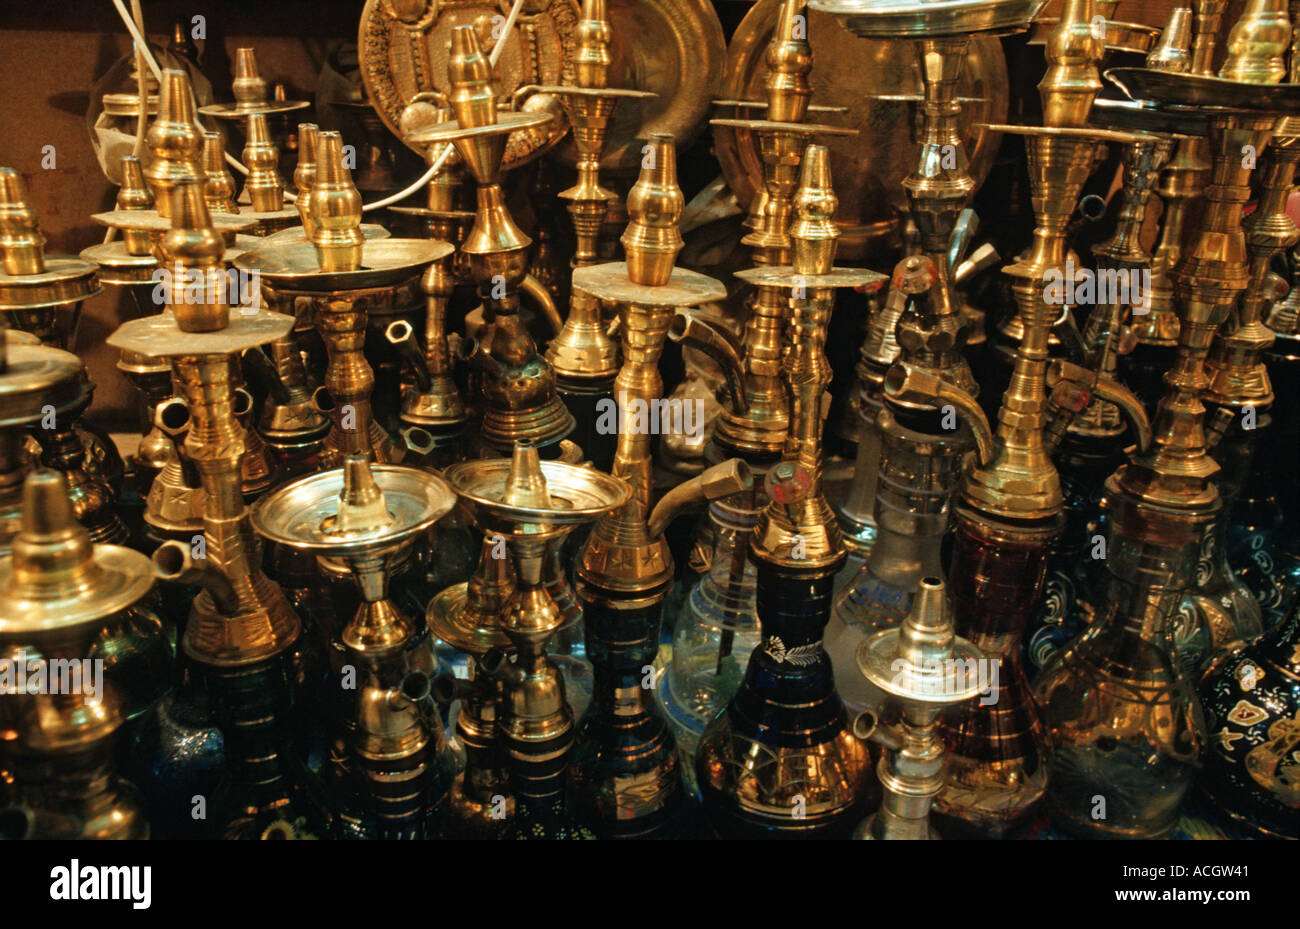 Selection of brass as sold in markets throughout Egypt including Cairo and Luxor - Stock Image